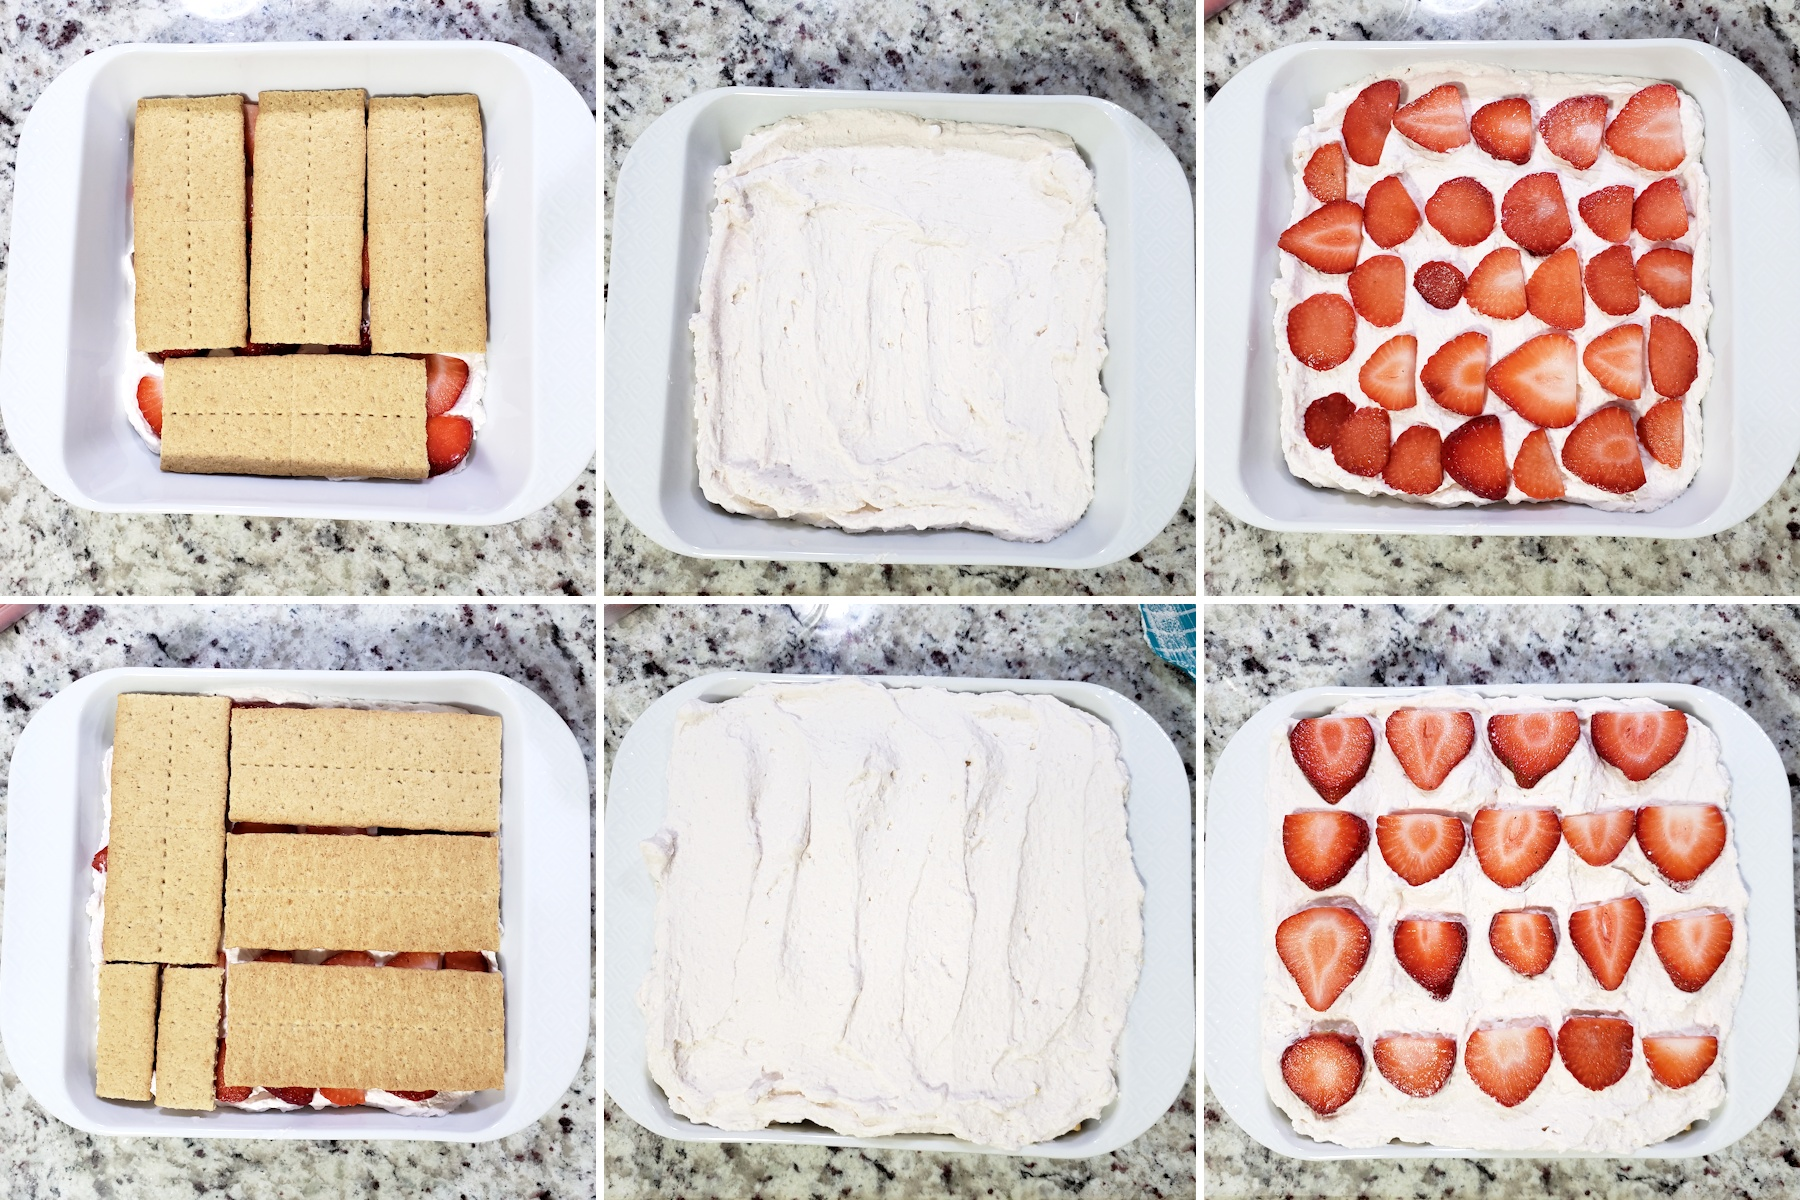 Assembling the layers of an icebox cake.